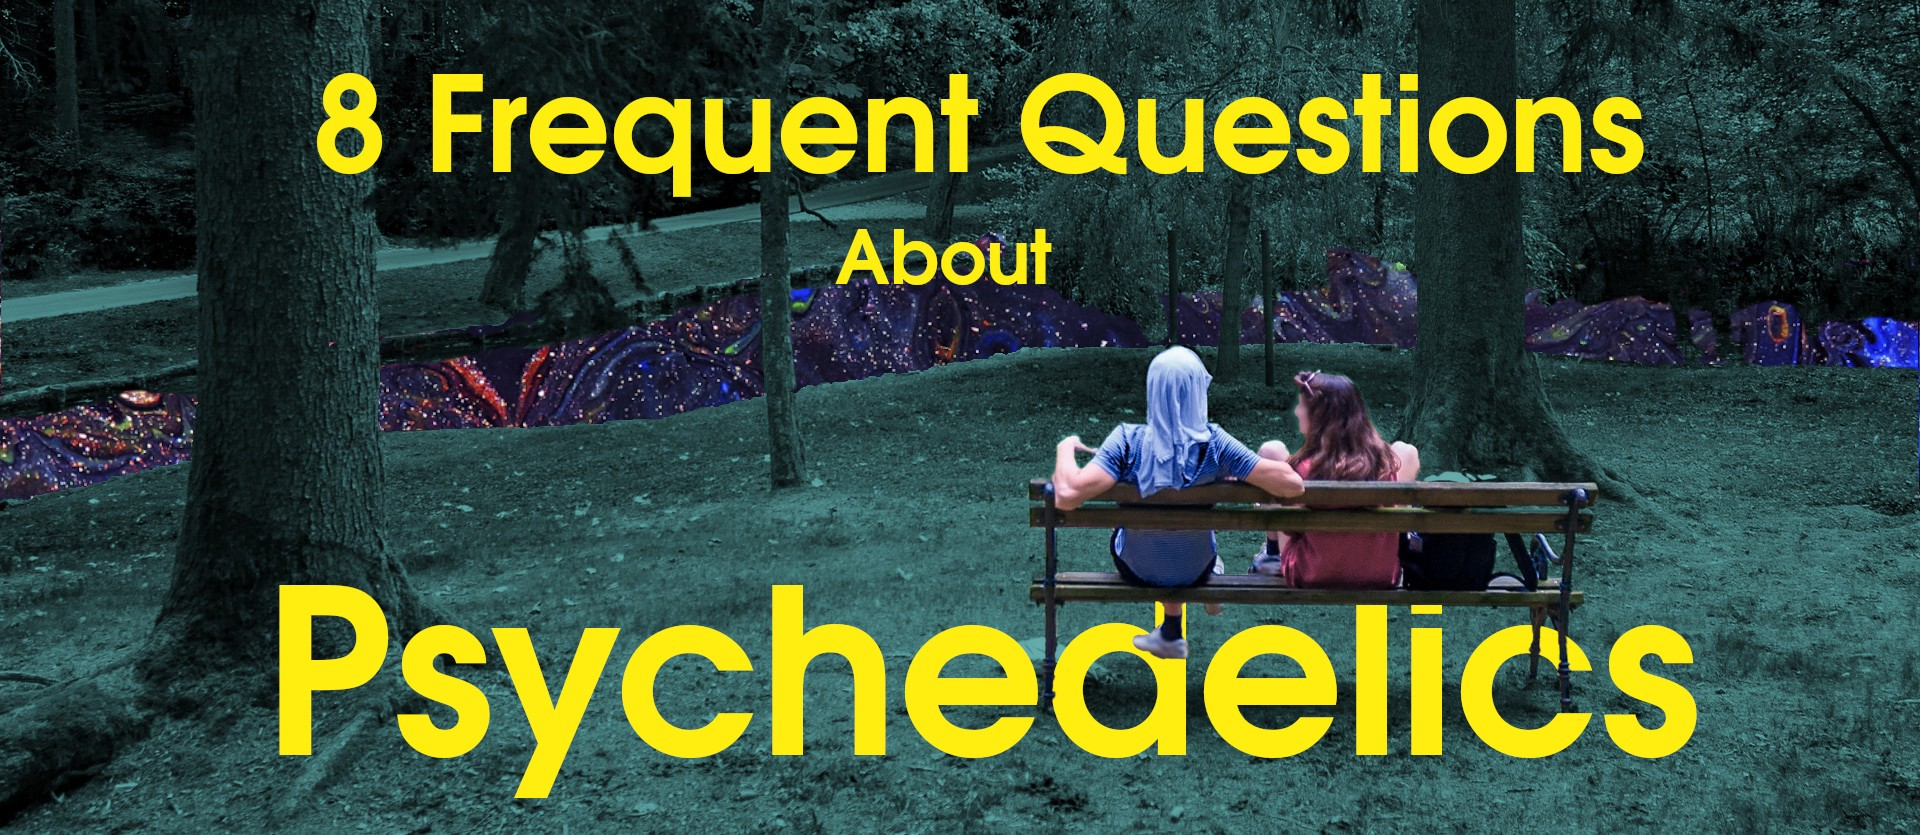 frequent questions about psychedelics cover